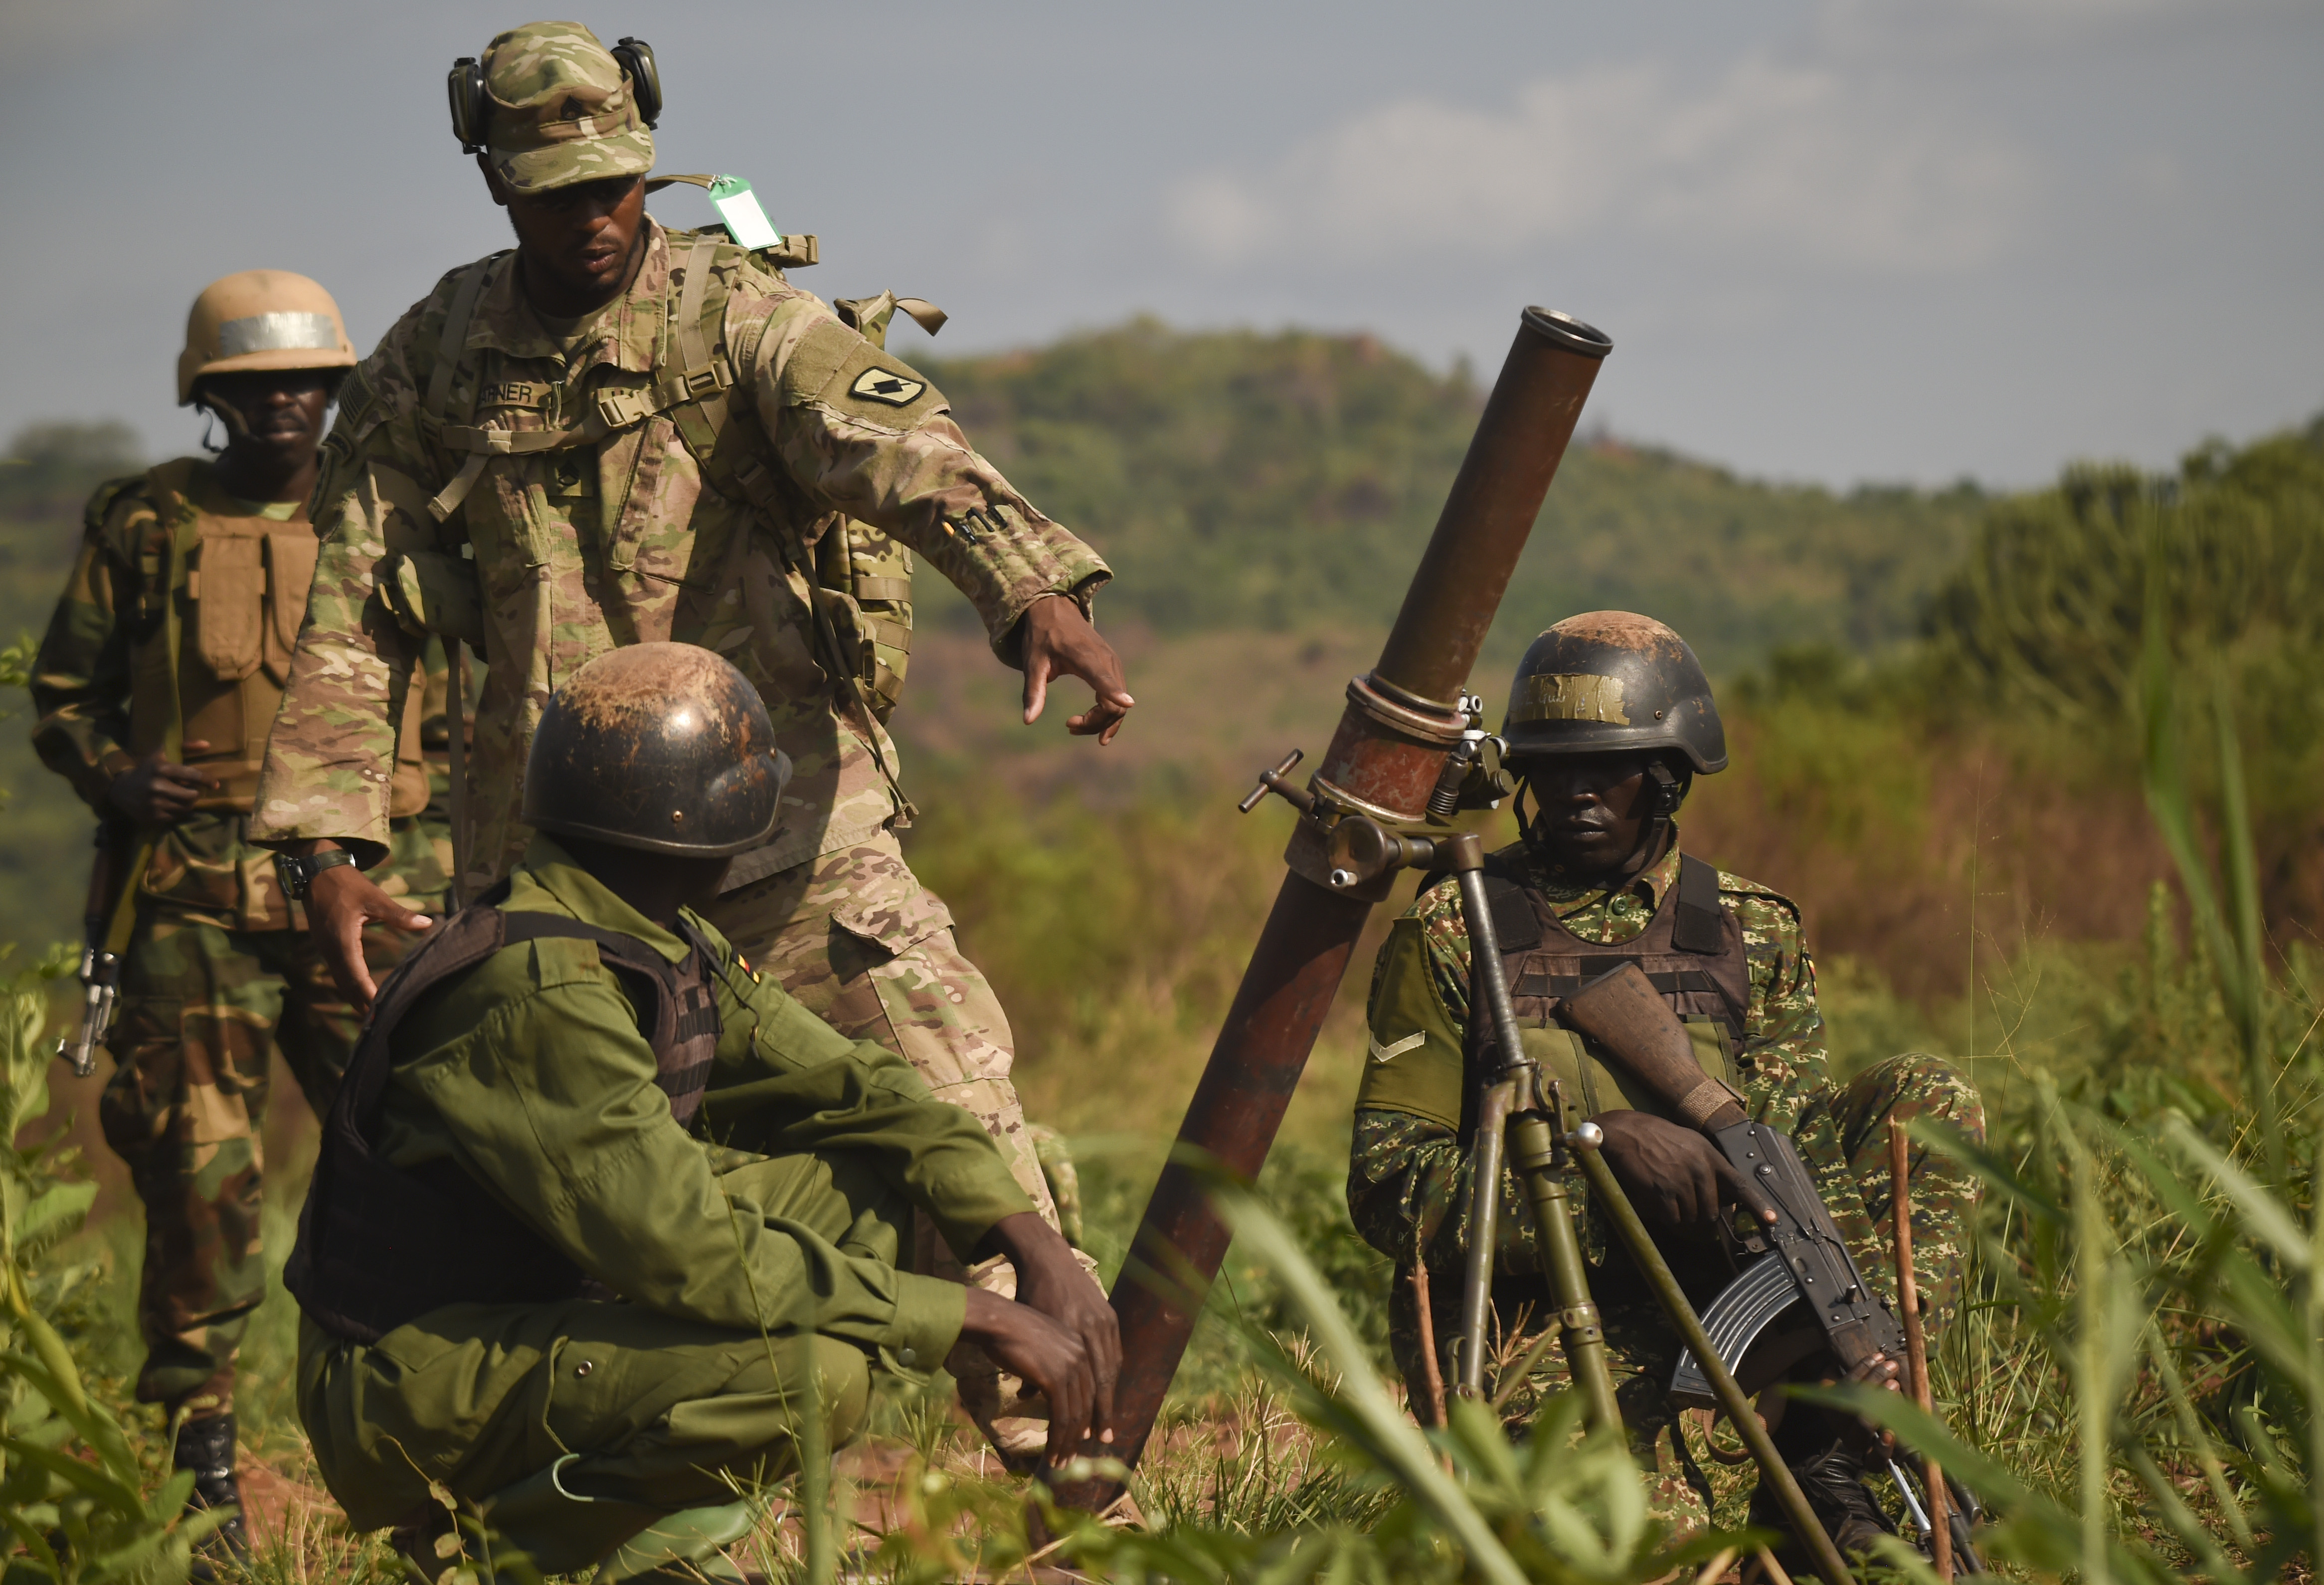 U.S. Army Staff Sgt. John Garner, Combined Joint Task Force-Horn of Africa mortarman subject matter expert, assists Uganda People's Defense Force soldiers, Ugandan Battle Group 22 (UGABAG 22), as they prepare to fire mortars during a live fire exercise at Camp Singo, Uganda, Feb. 27, 2017. The live fire is part of a 12-week pre-deployment training course for UGABAG 22. (U.S. Air National Guard photo by Staff Sgt. Penny Snoozy)